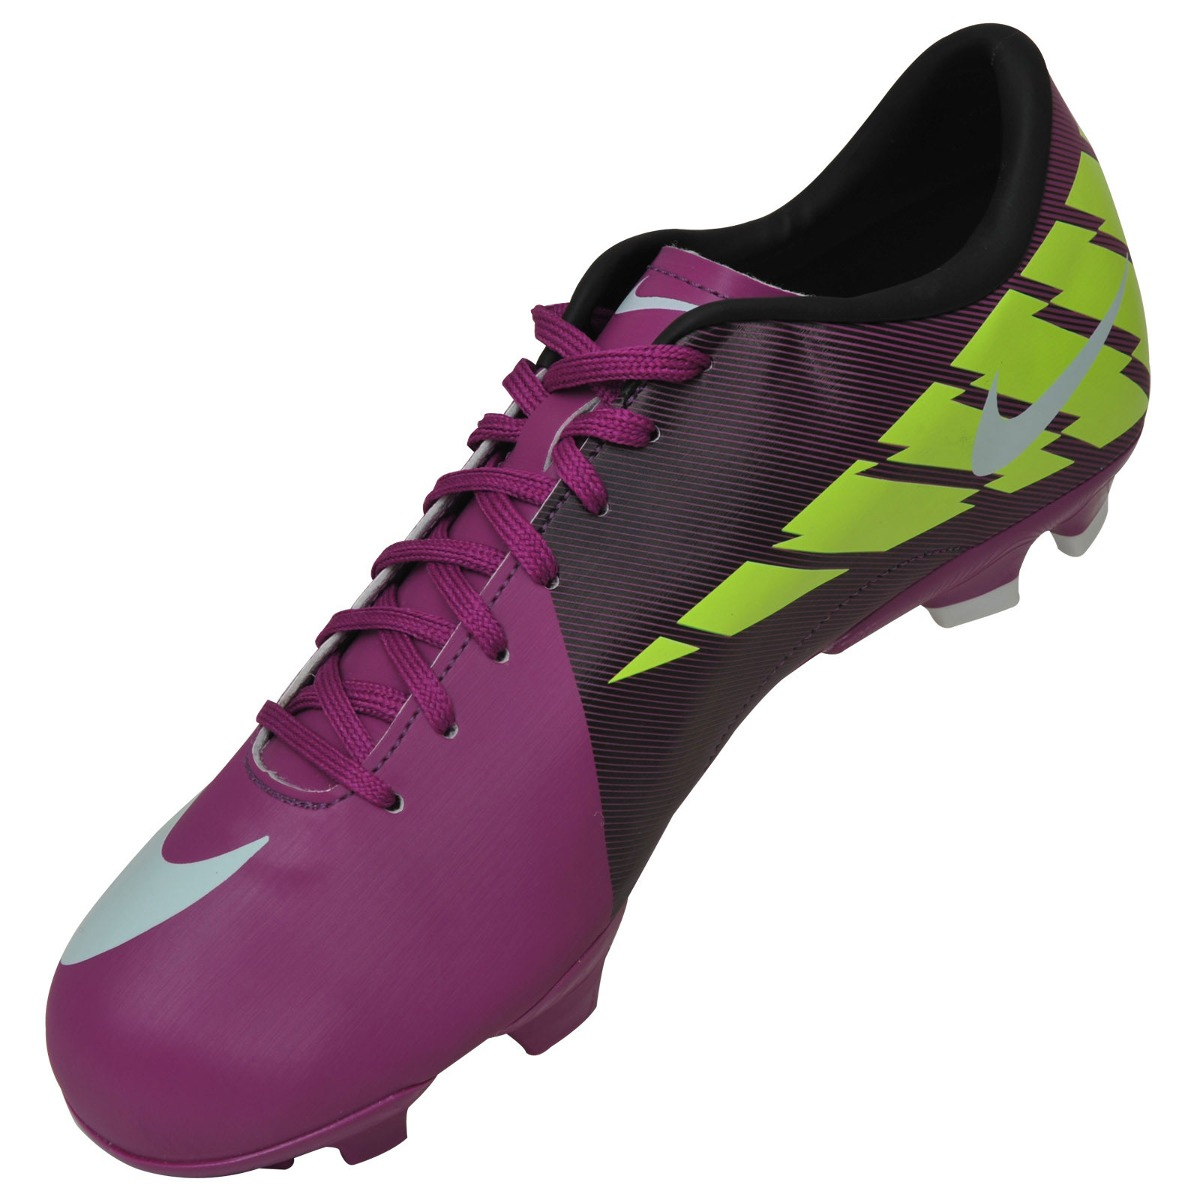 6724d9ebaa ... coupon chuteira campo infantil nike mercurial victory ii fg roxo br  135c6 1ccc2